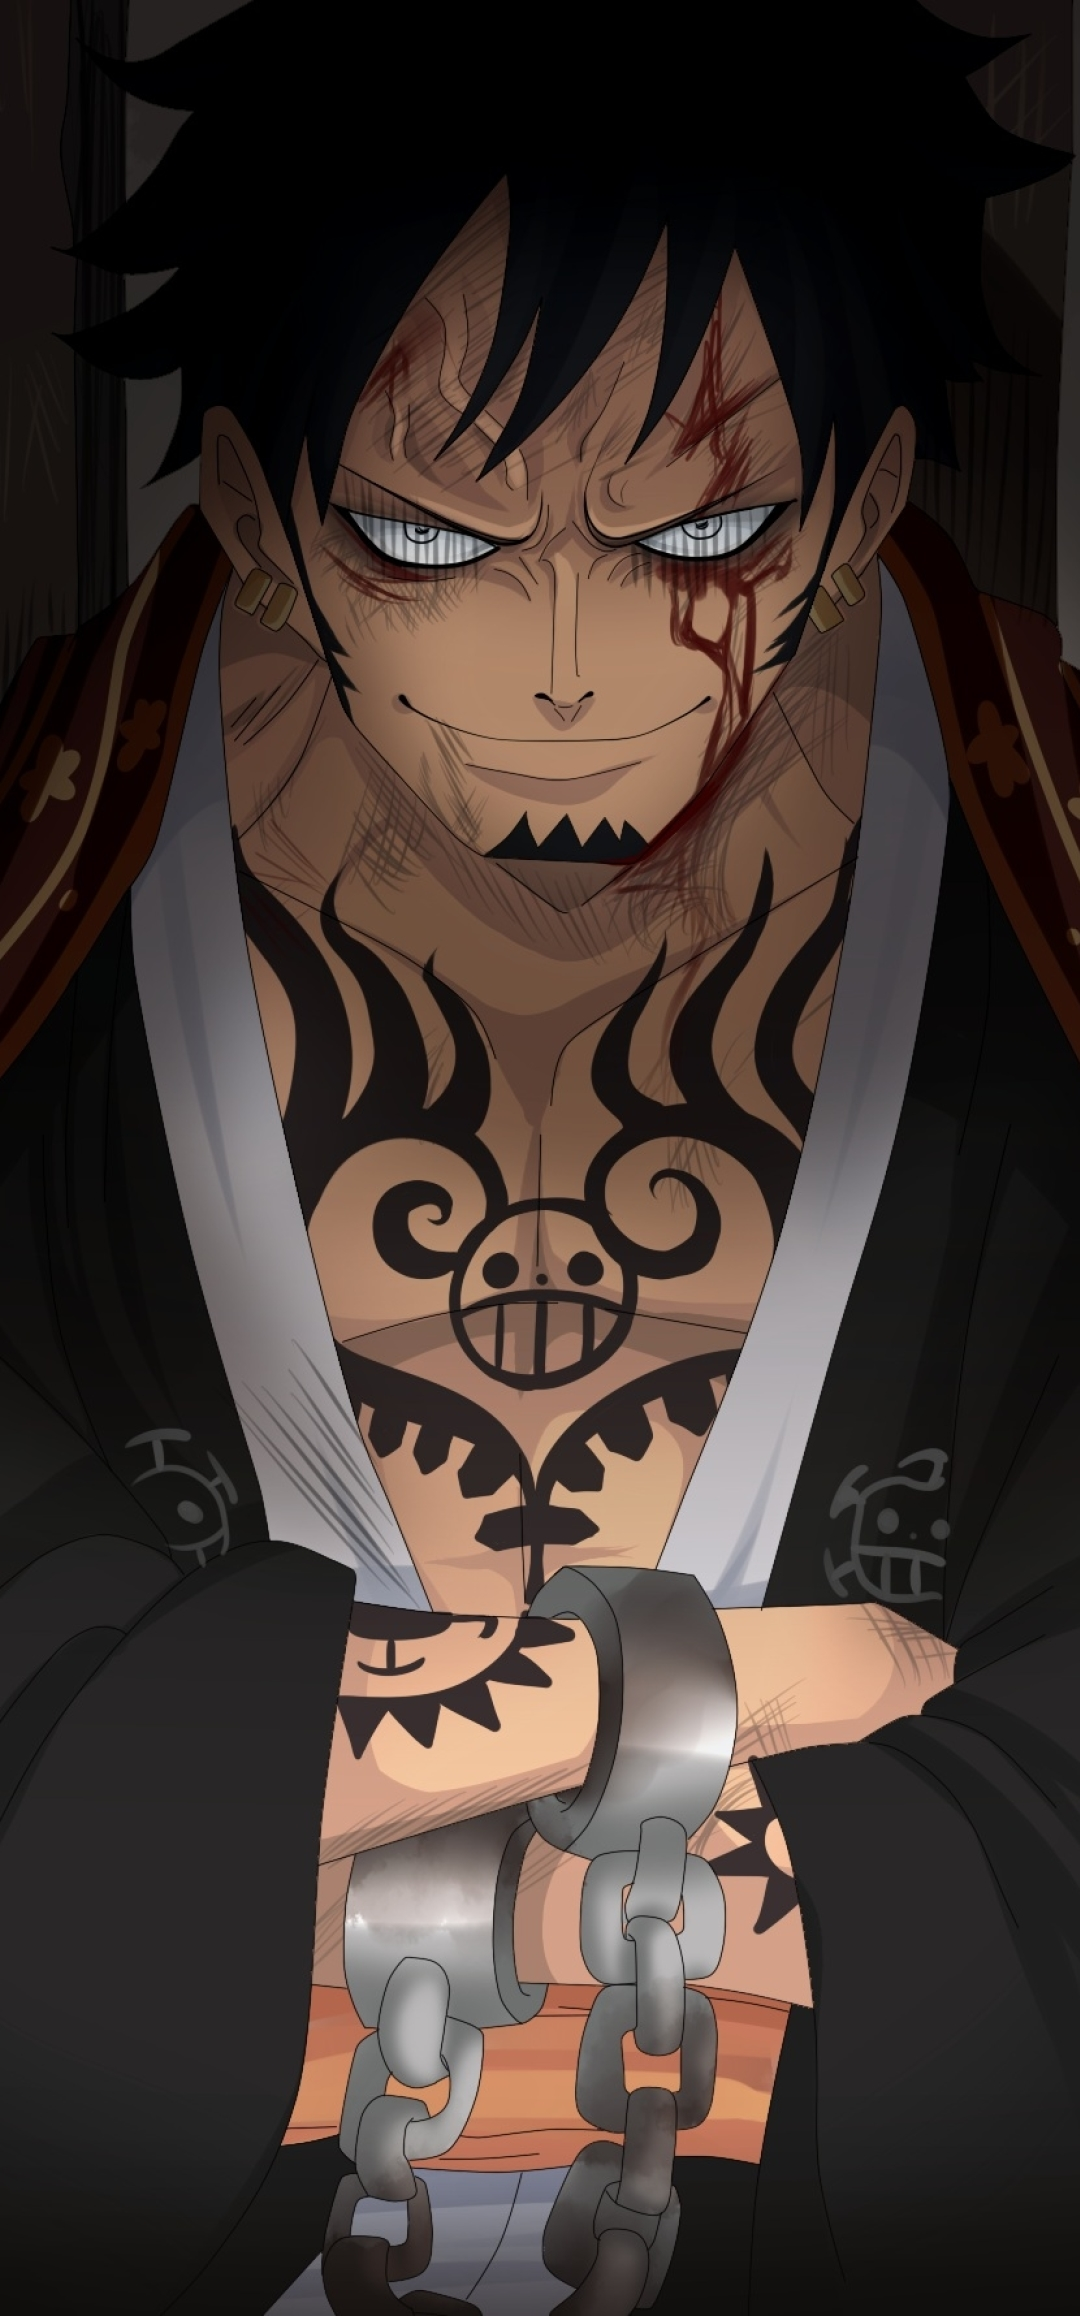 1080x2316 Trafalgar Law From One Piece 1080x2316 Resolution Wallpaper Hd Anime 4k Wallpapers Images Photos And Background